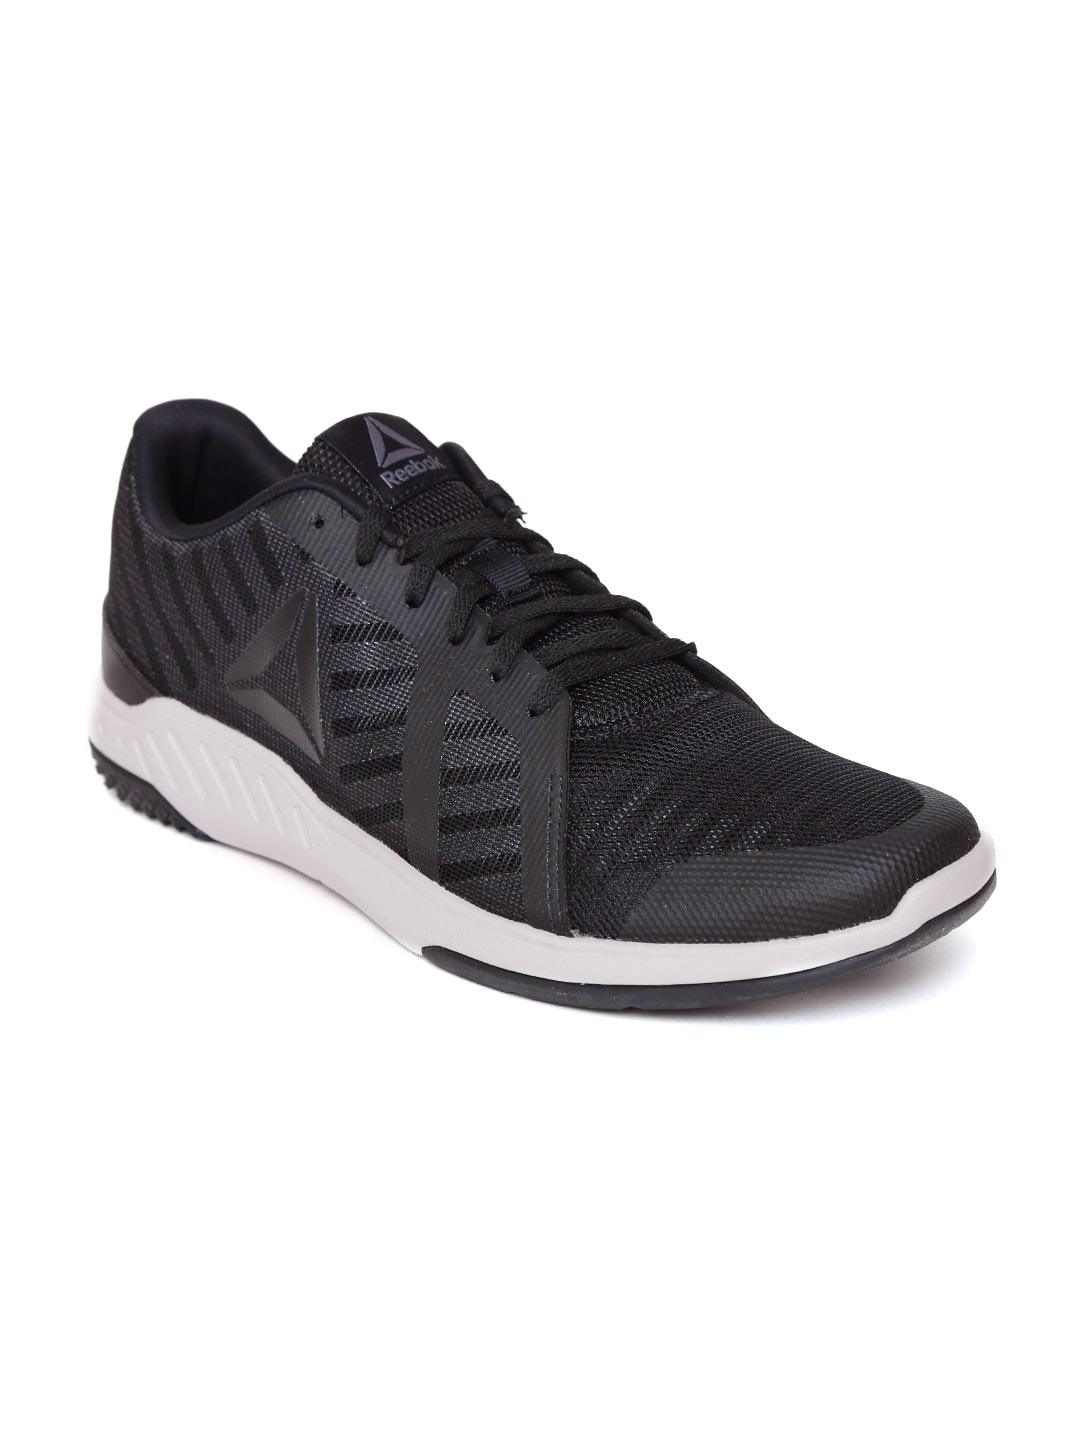 Sports Shoes for Men - Buy Men Sports Shoes Online in India - Myntra 2c3d3efdc